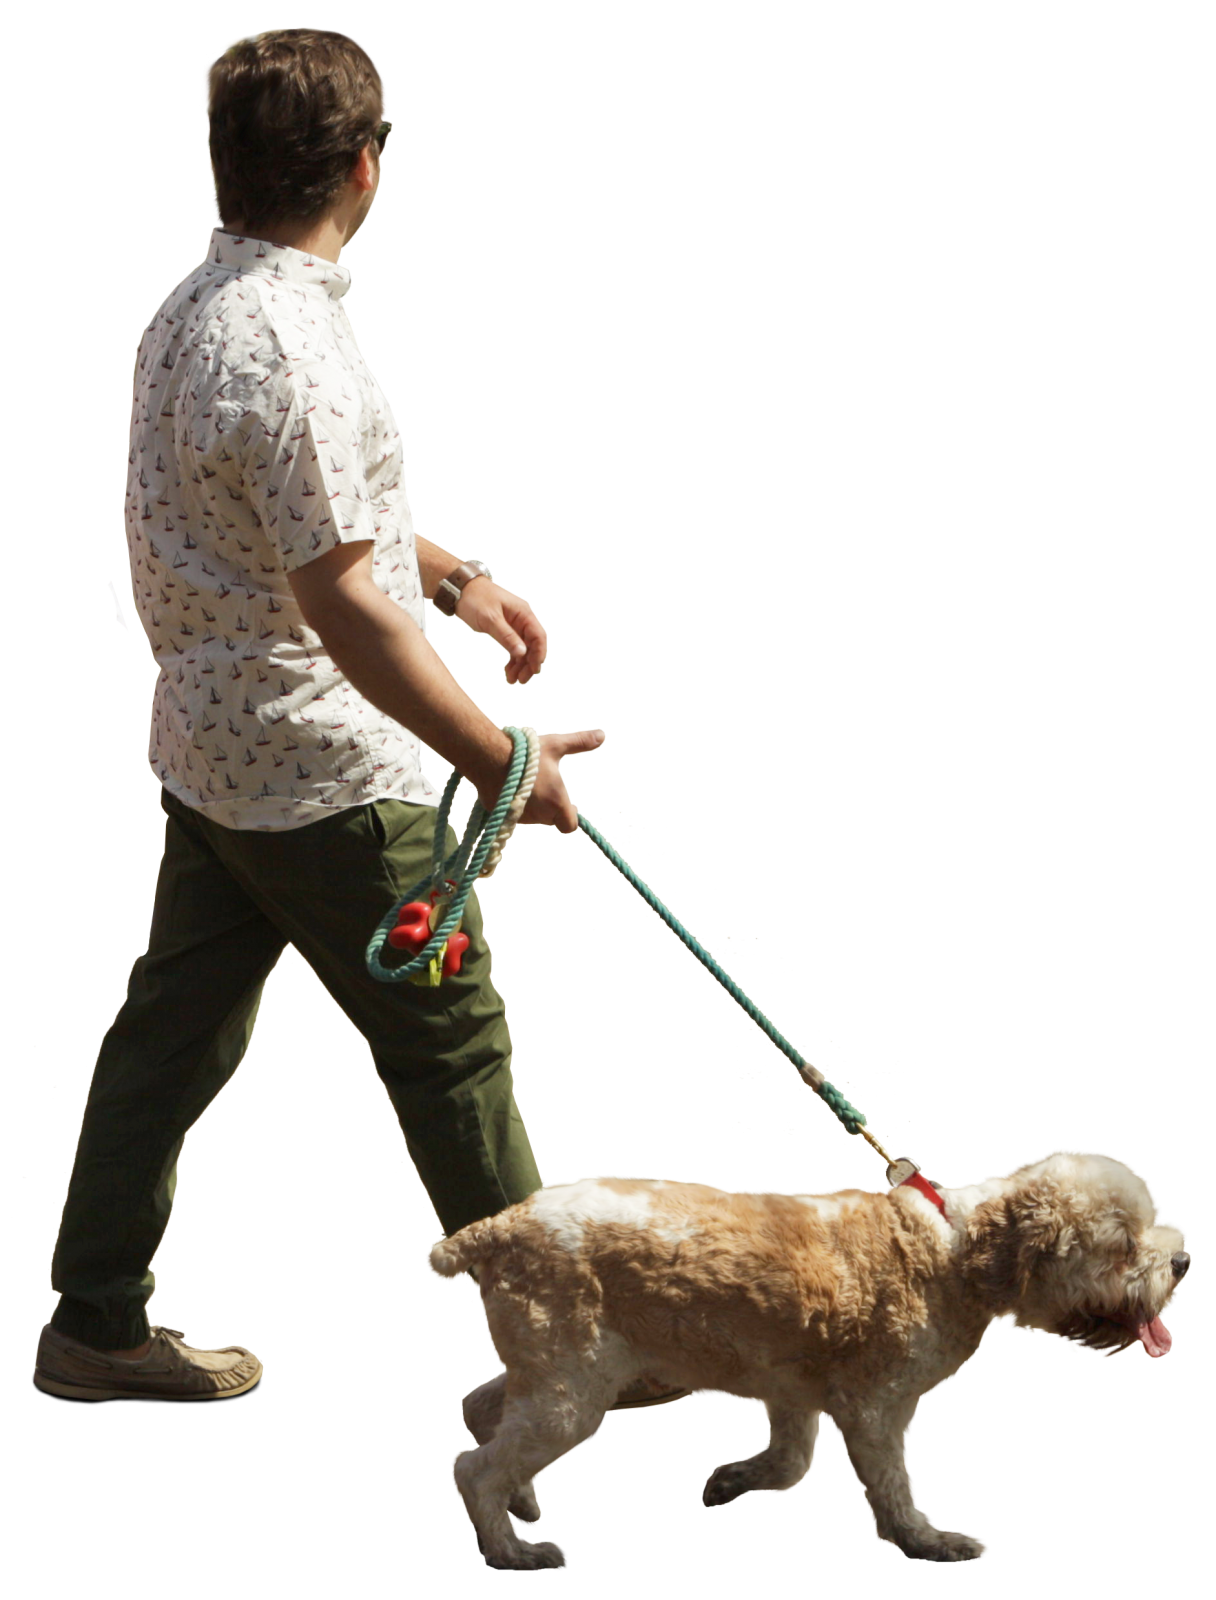 Man Walking Dog : Man walking with dog cut out for architectural